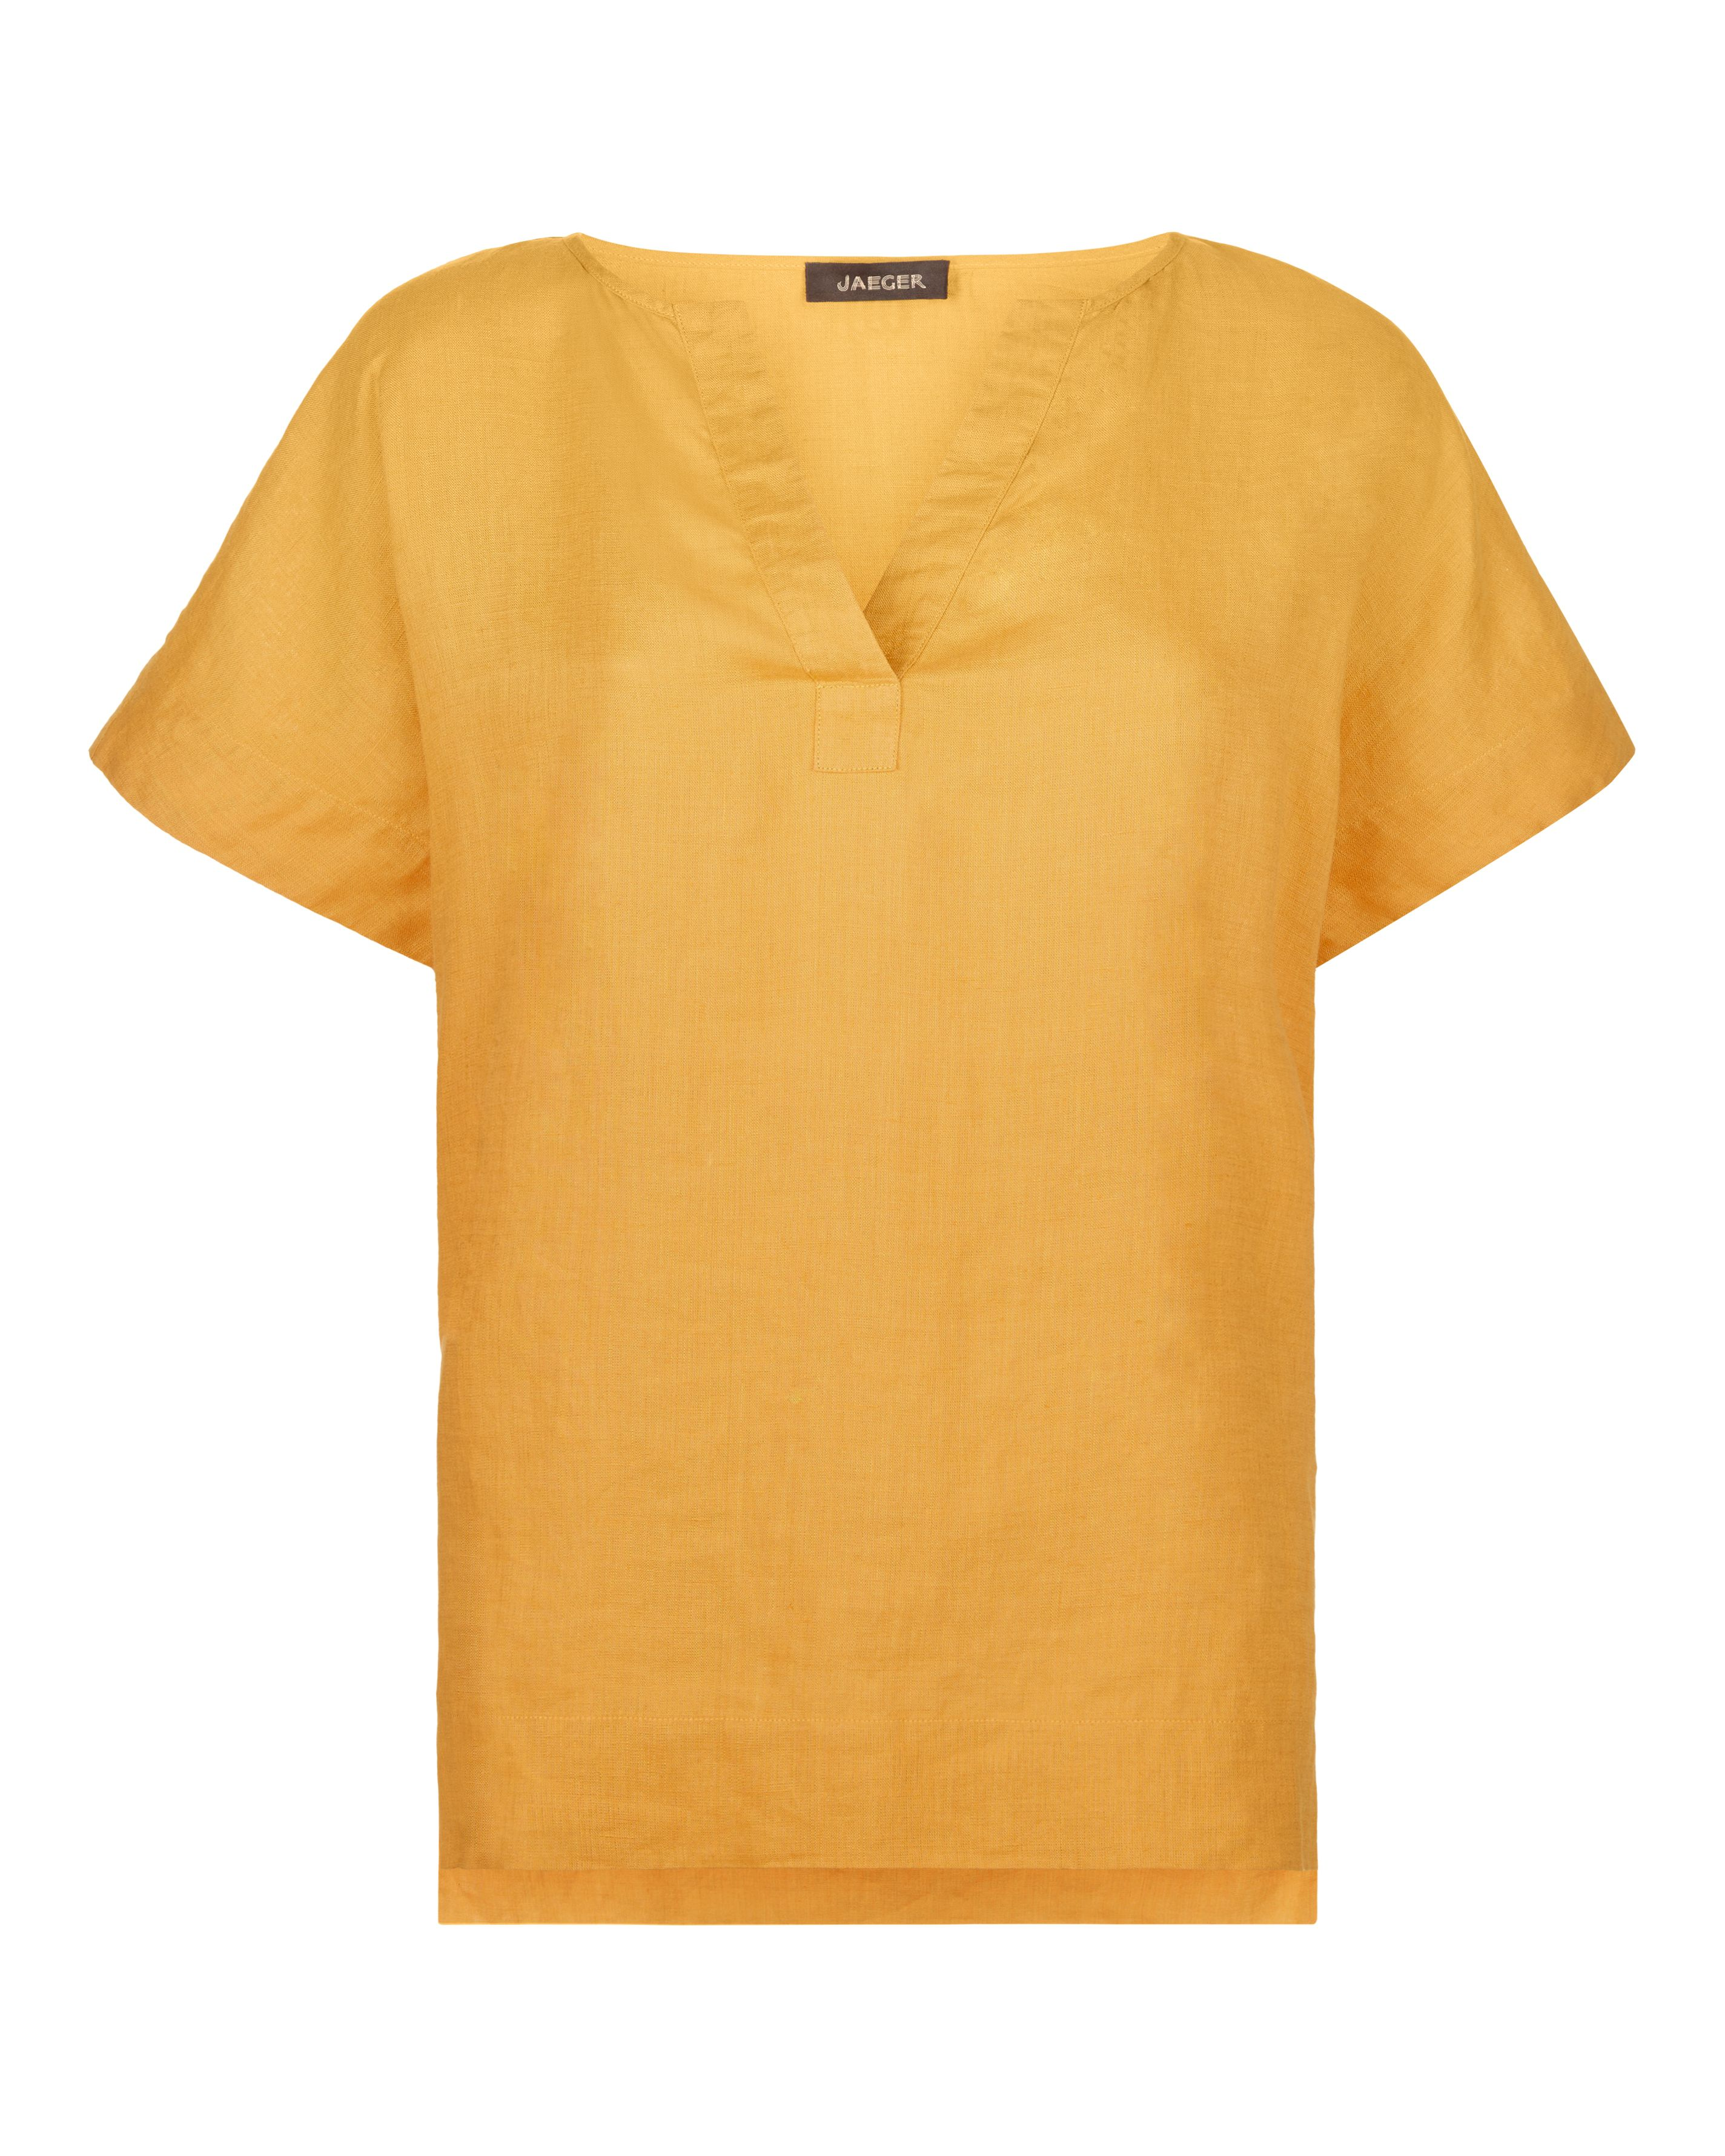 Jaeger Linen Split Sleeve T-Shirt, Orange